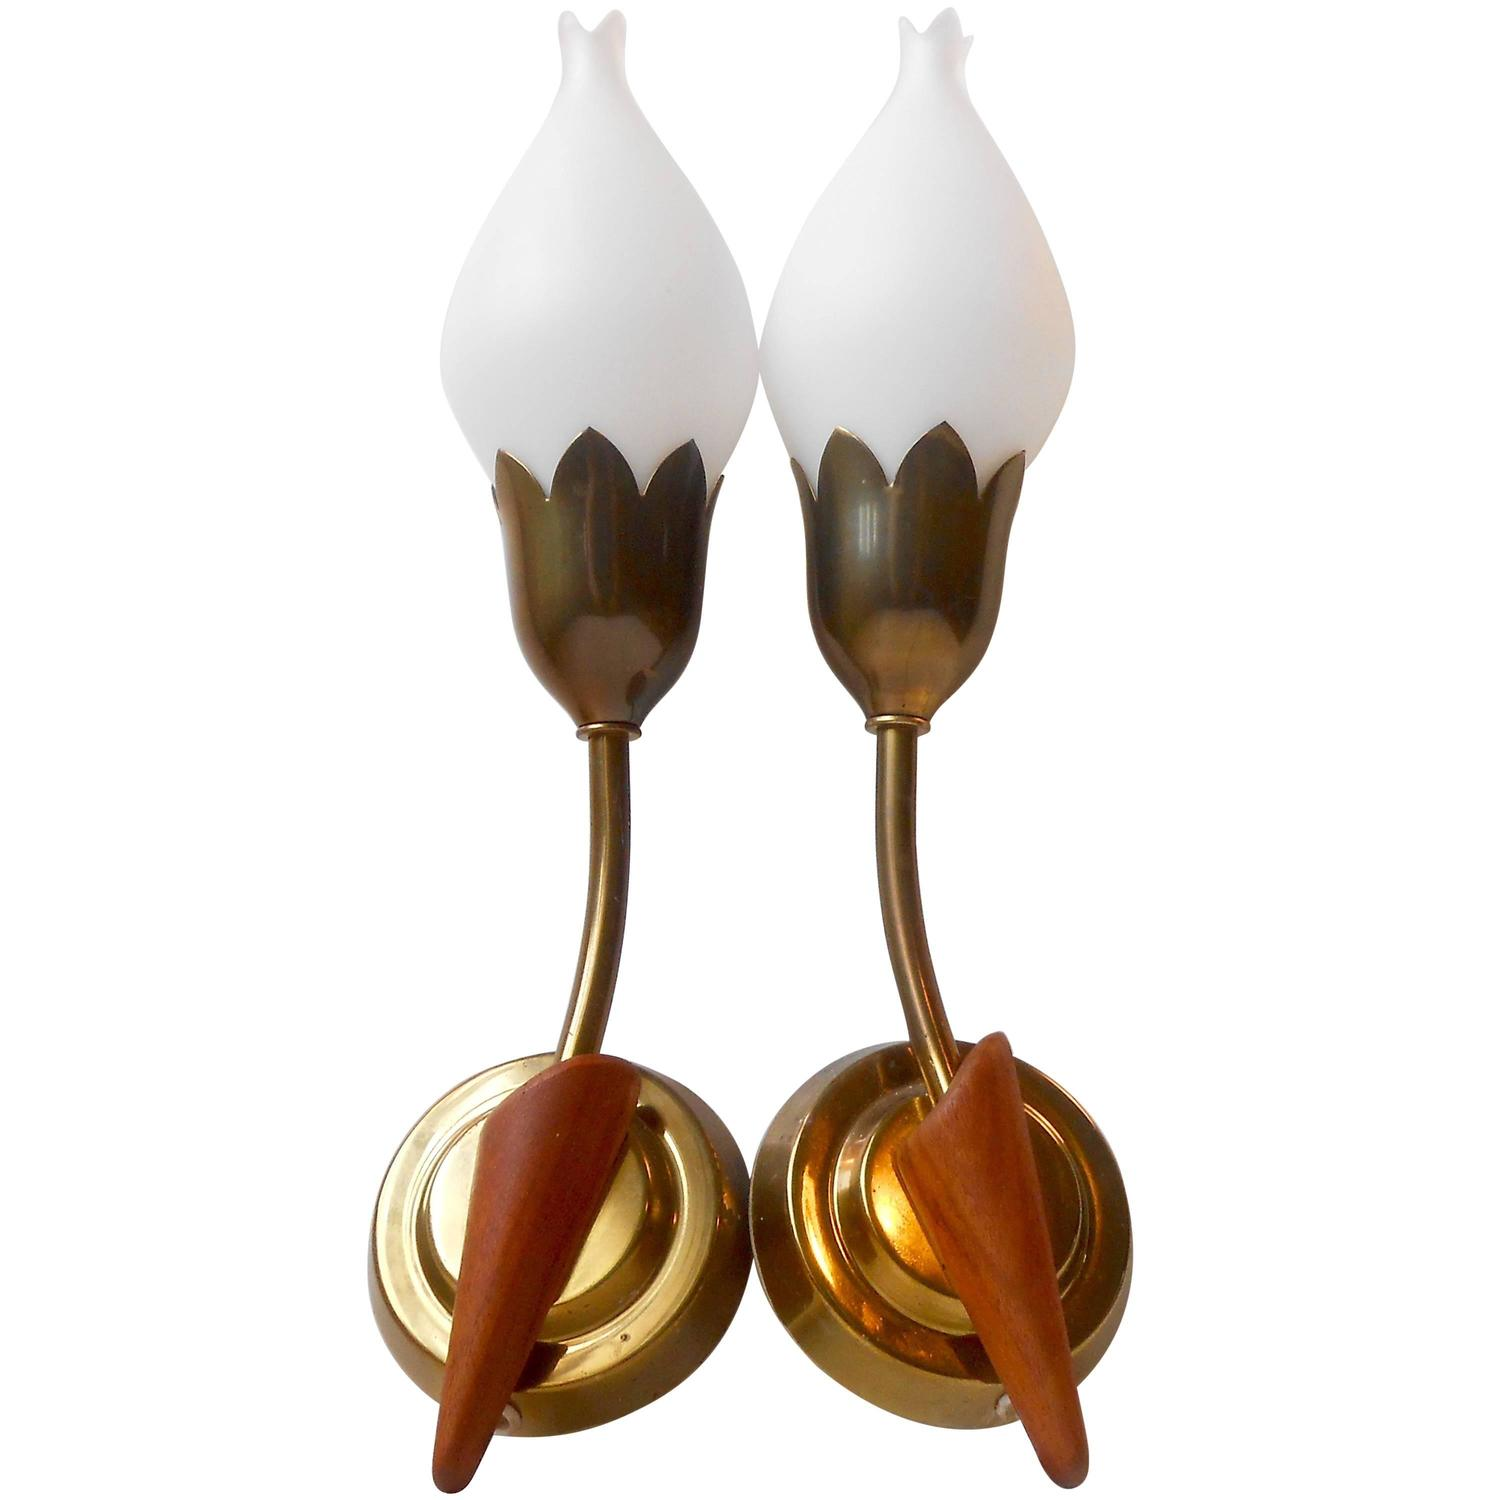 Rare Pair of Tulip Wall Sconces by Fog and M?rup, Opal Glass, Teak and Brass For Sale at 1stdibs